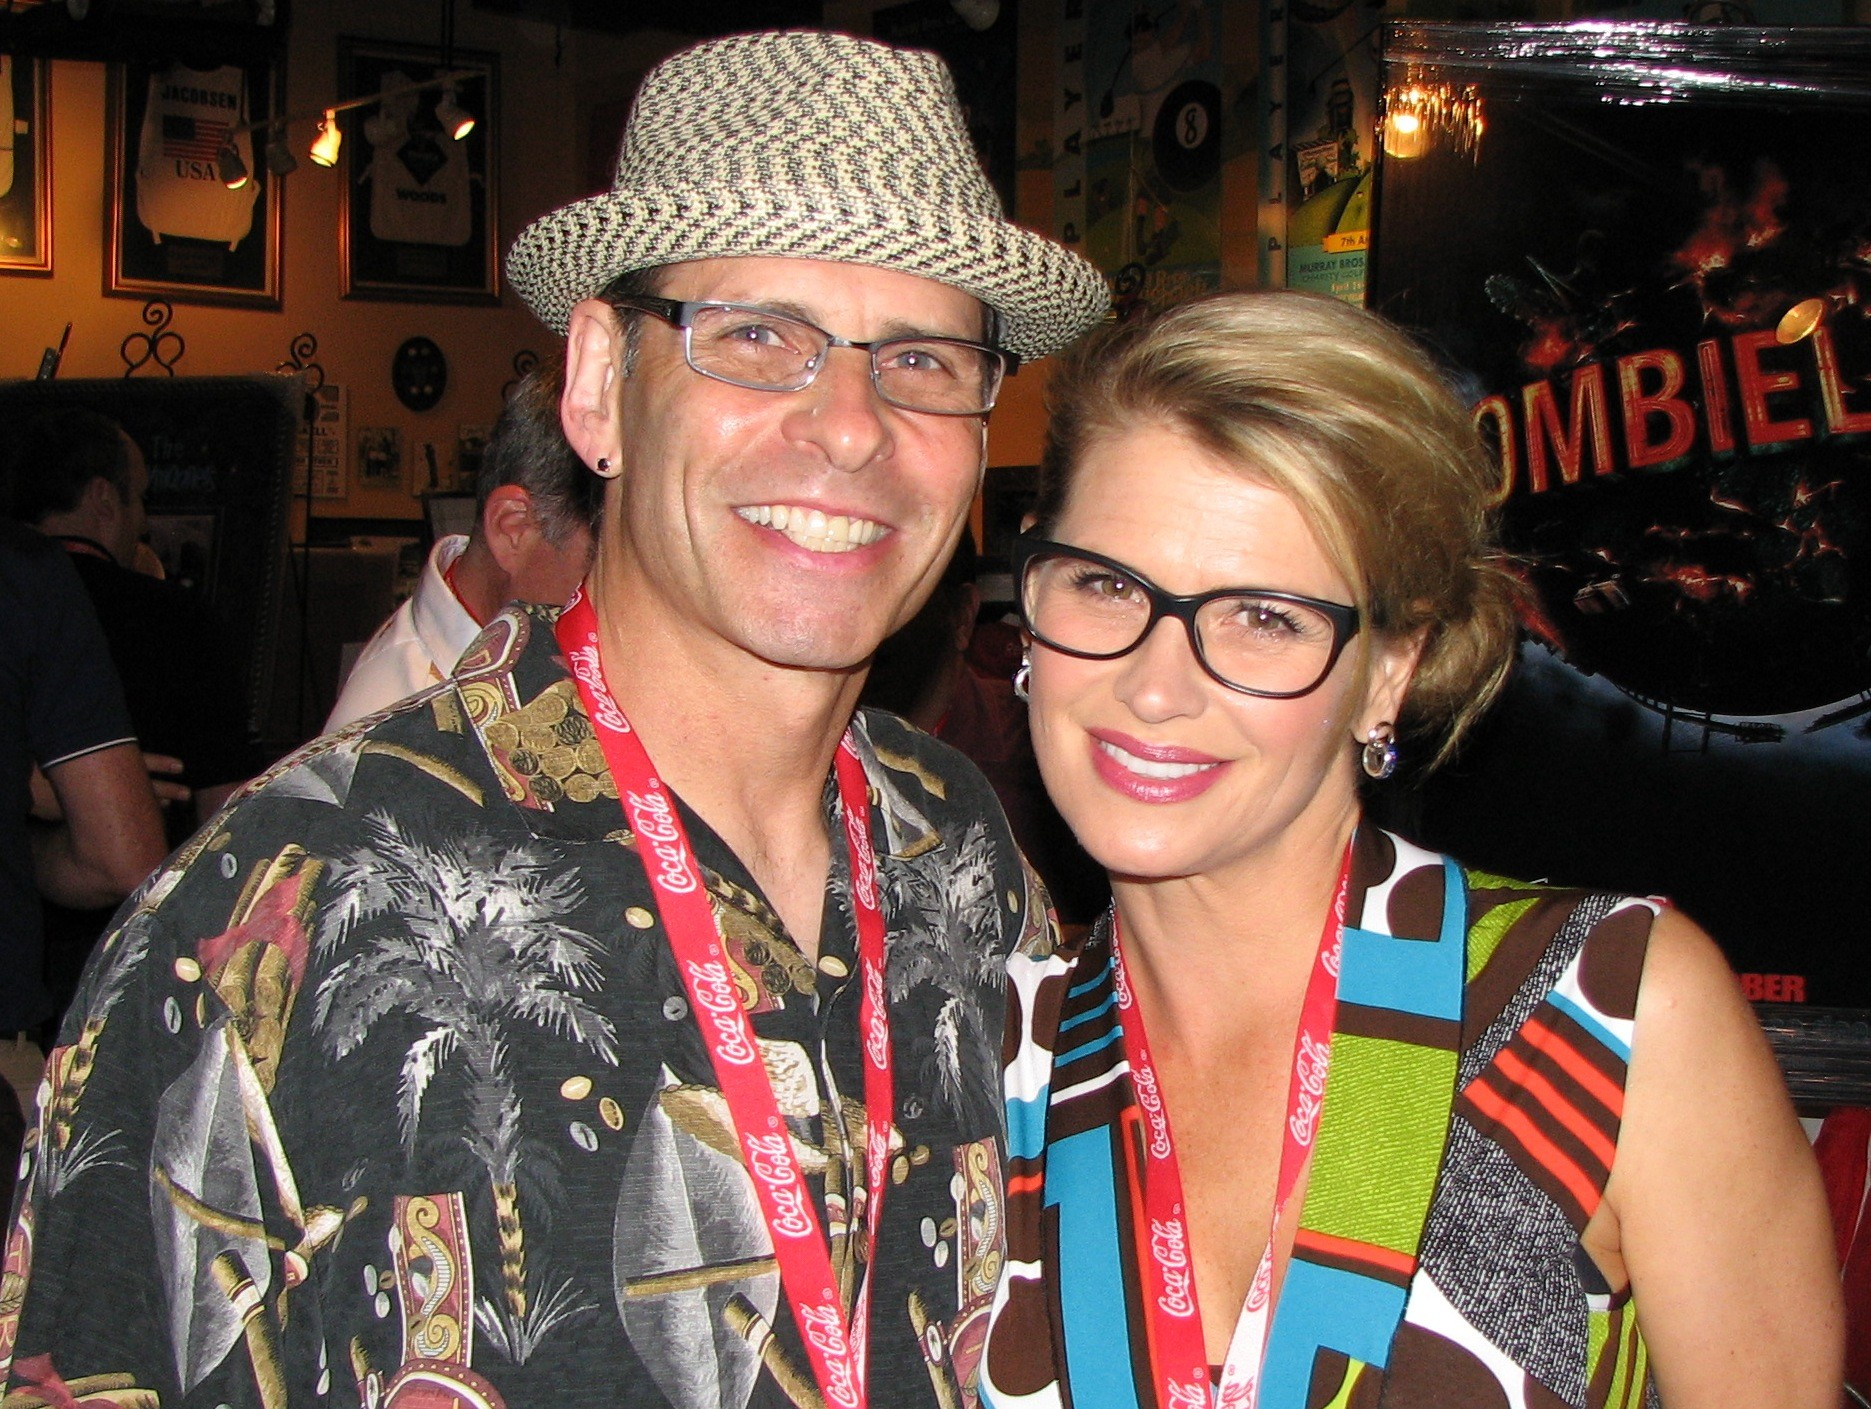 World Champion Pair Skater Lloyd Eisler and actress Kristy Swanson